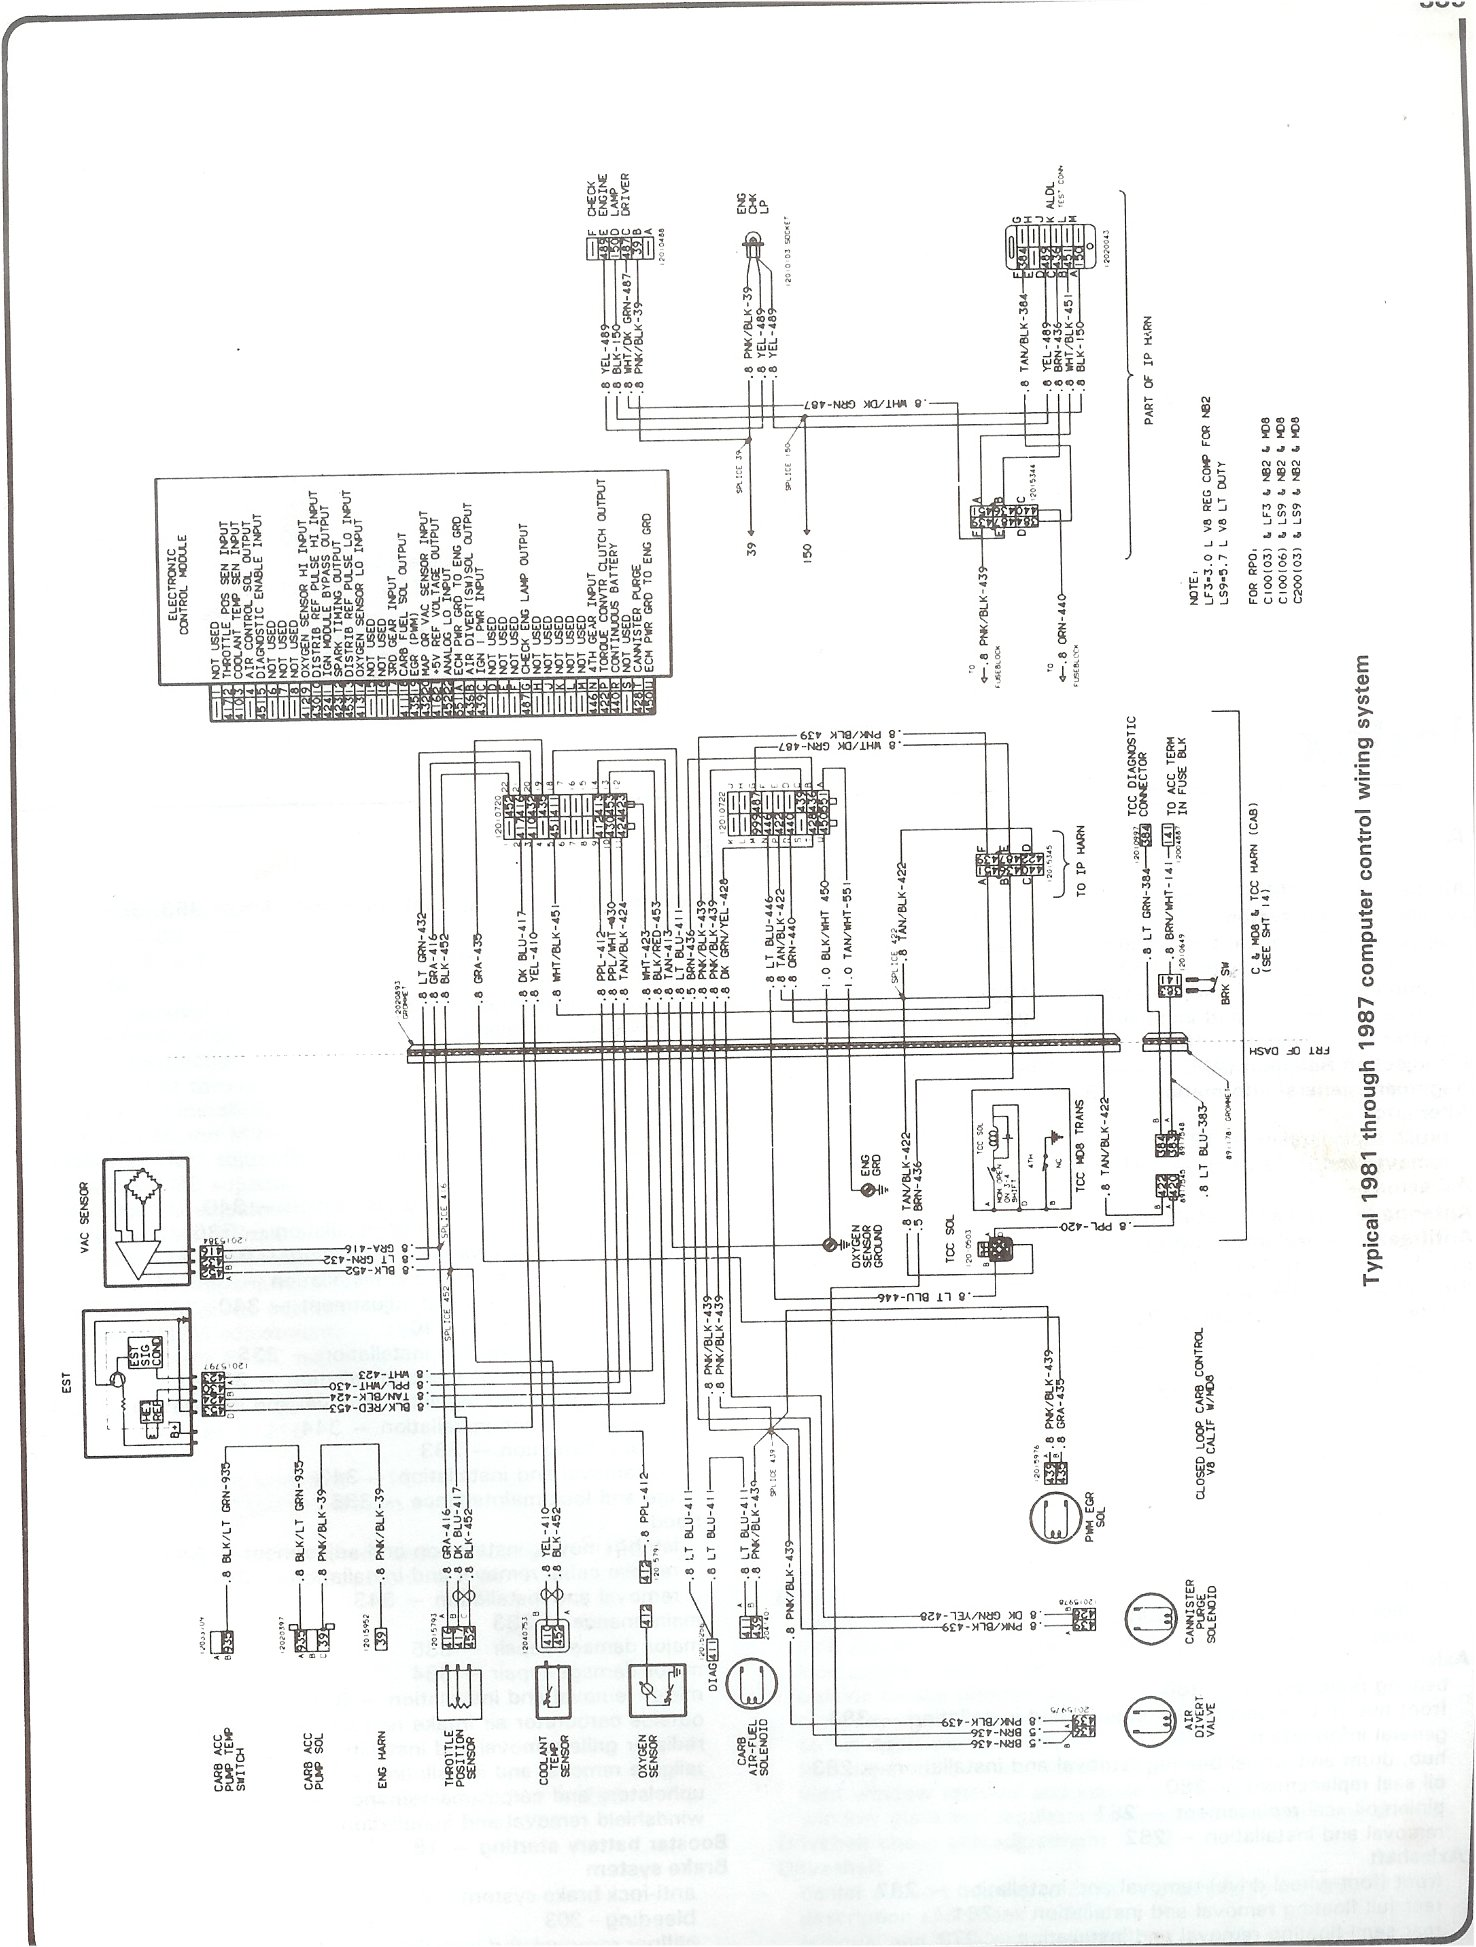 81 87_computer_control_wiring complete 73 87 wiring diagrams c10 wiring diagram at panicattacktreatment.co